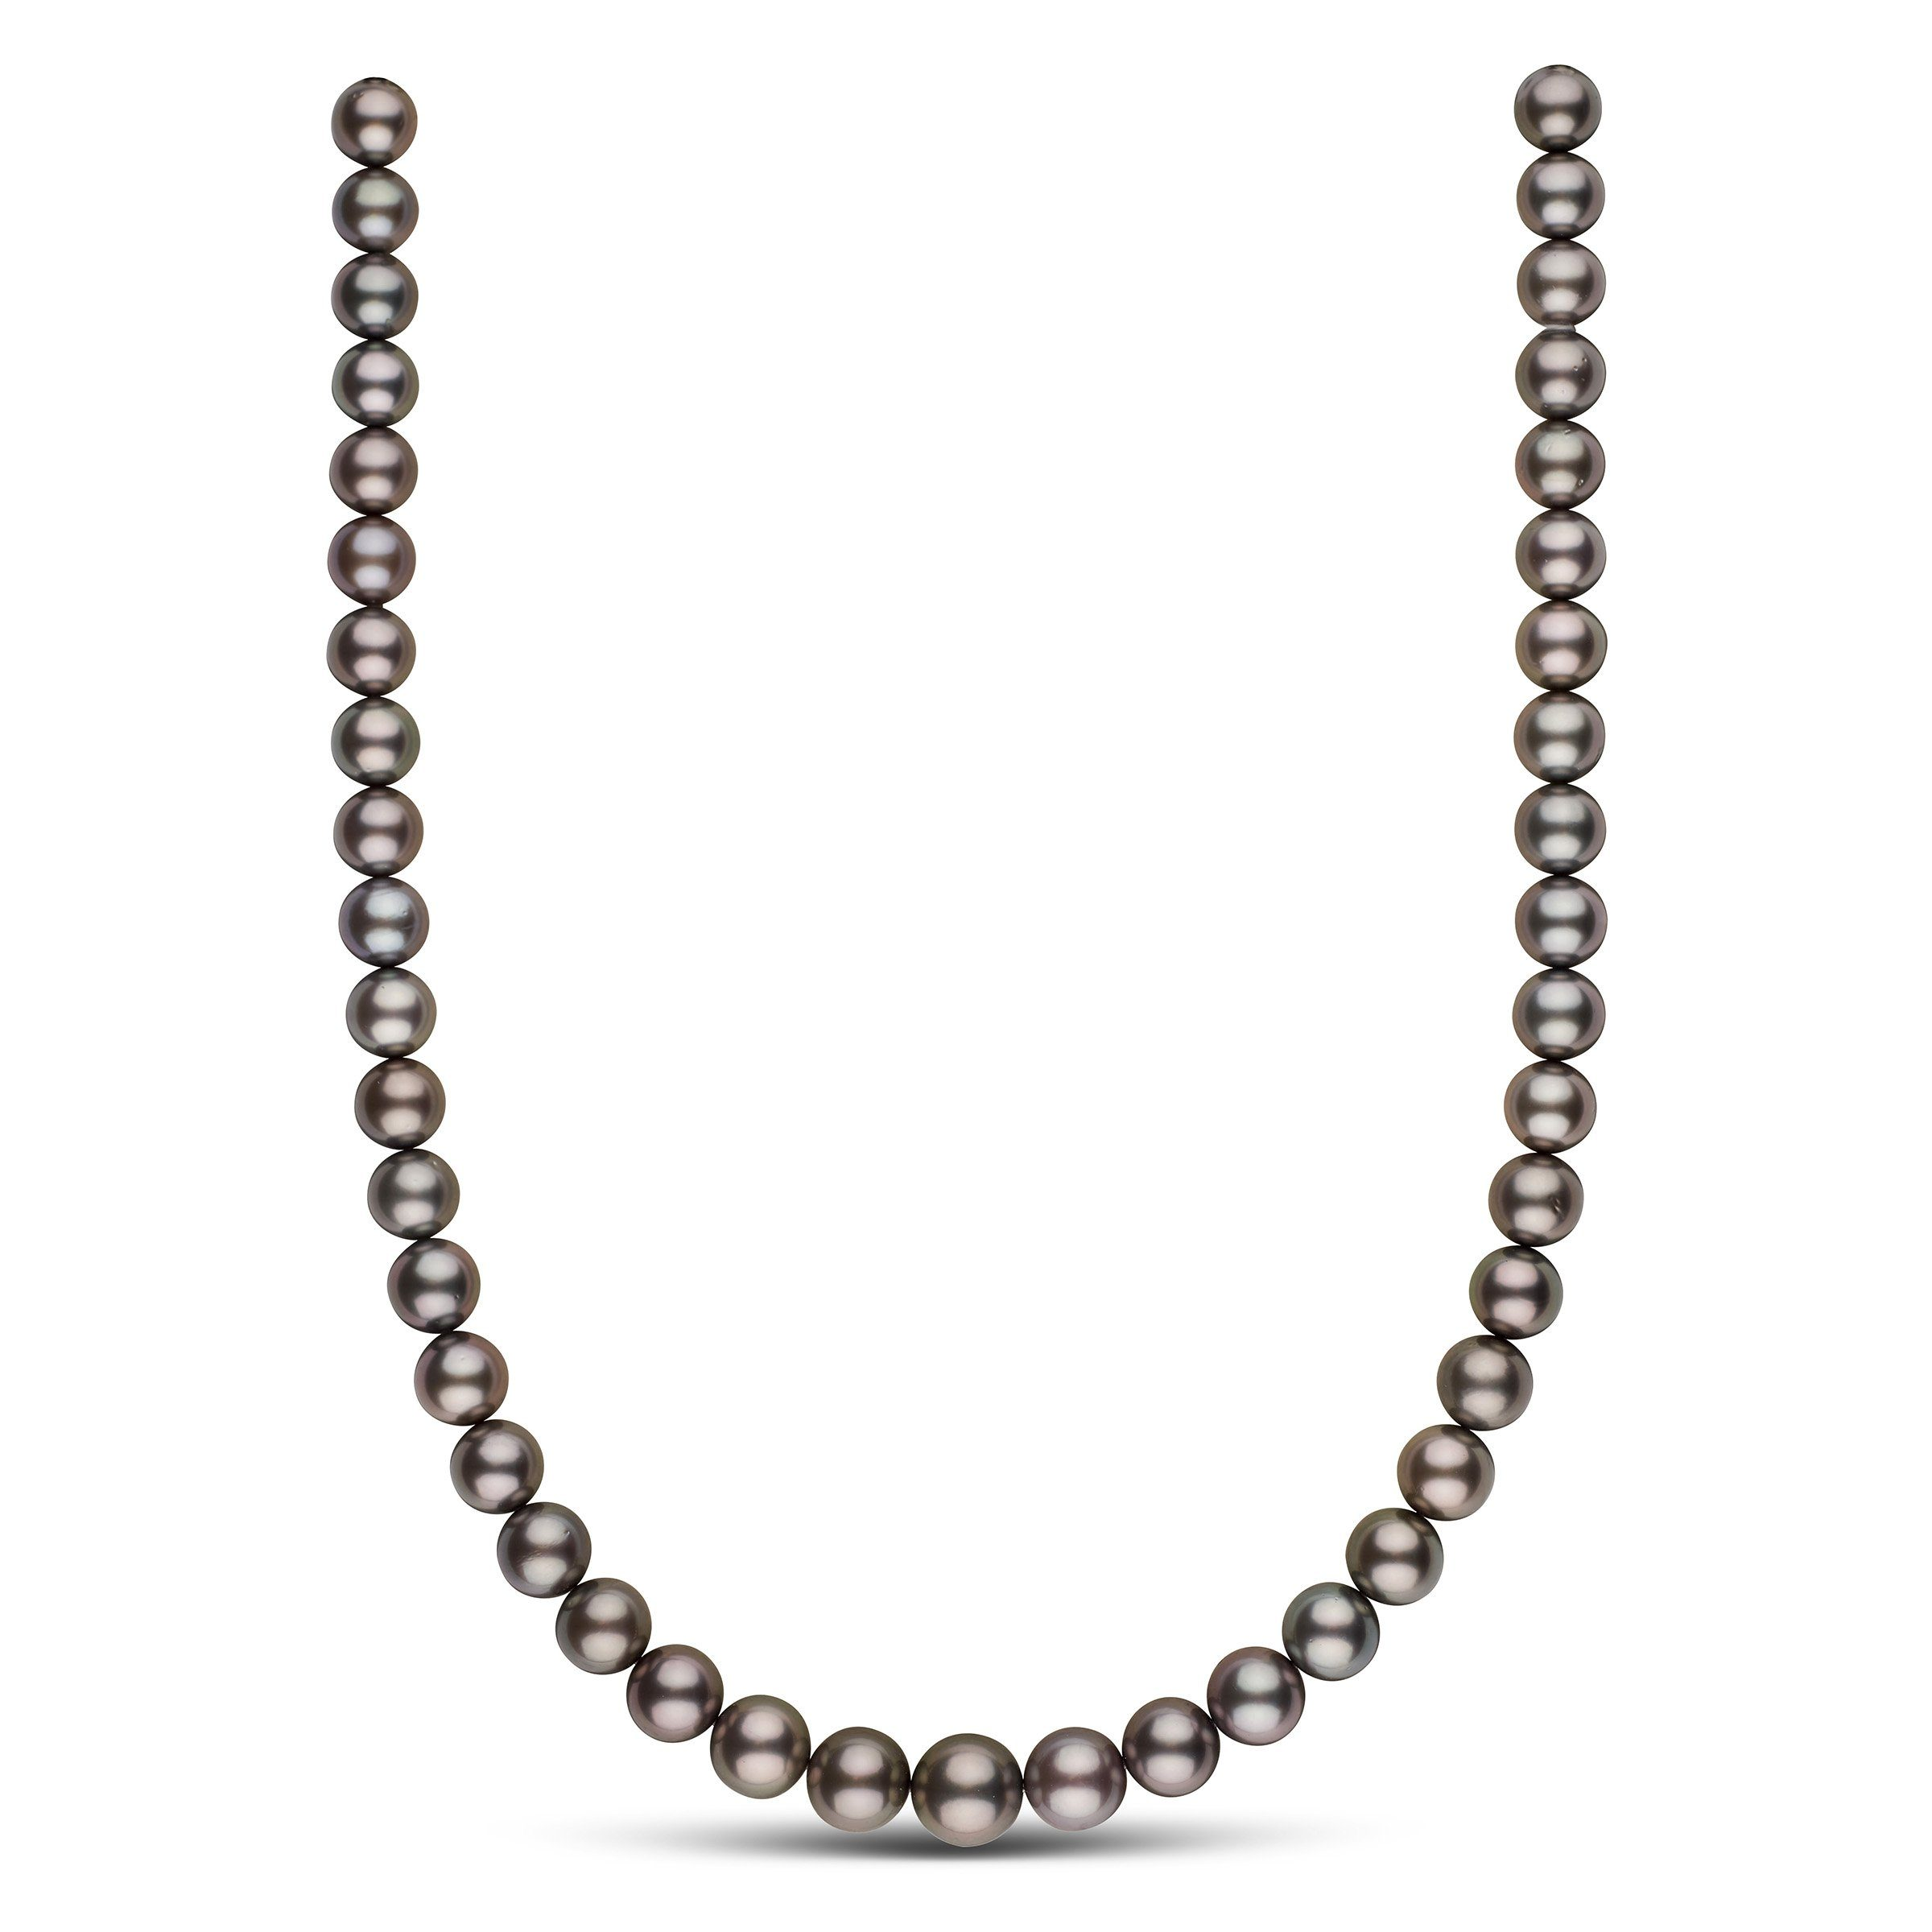 9.0-11.4 mm AAA Tahitian Round Pearl Necklace